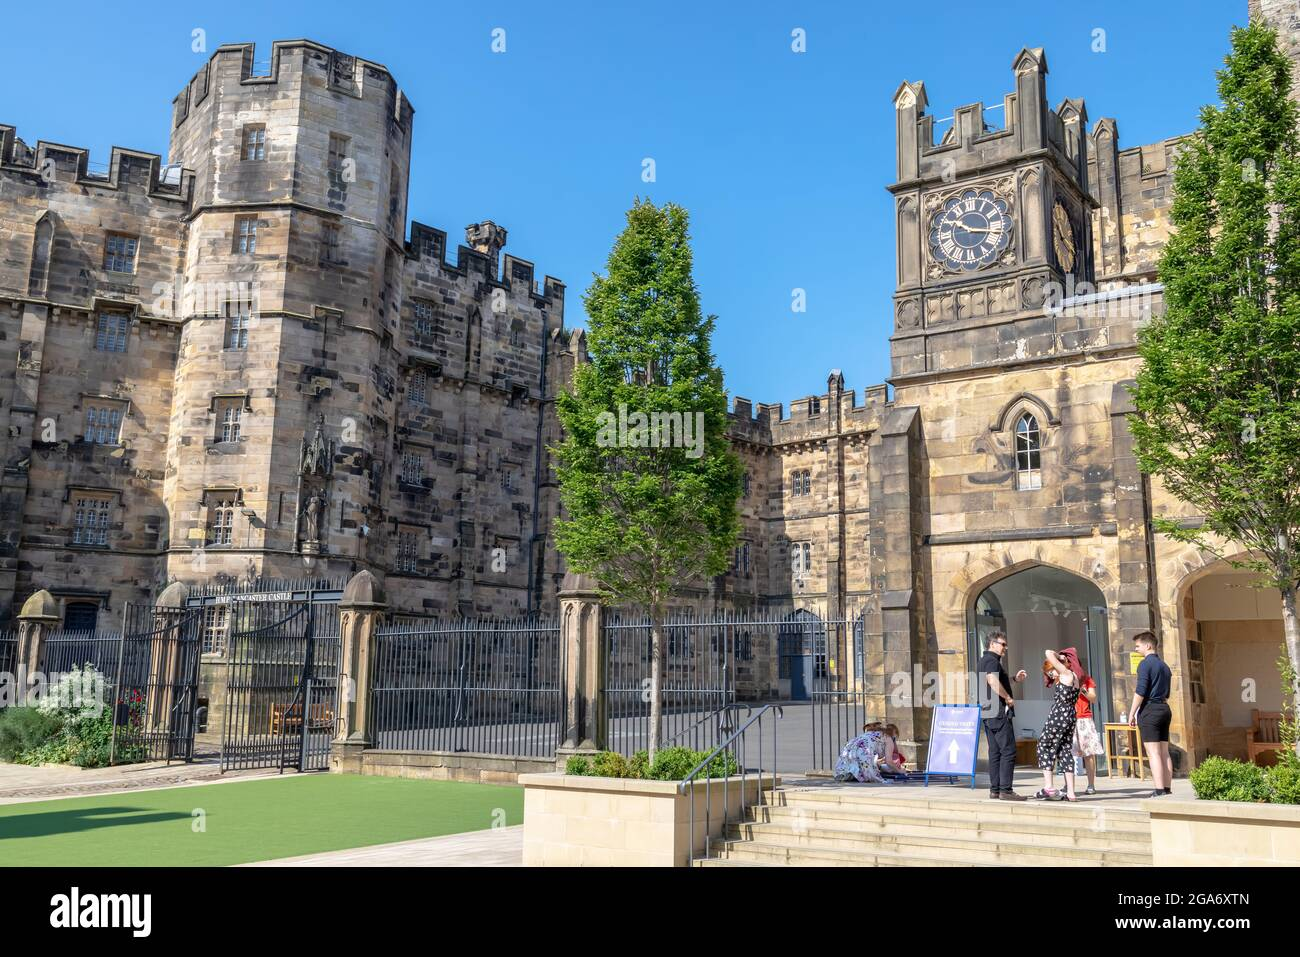 Inside the curtain wall of medieval Lancaster Castle, UK. Stock Photo